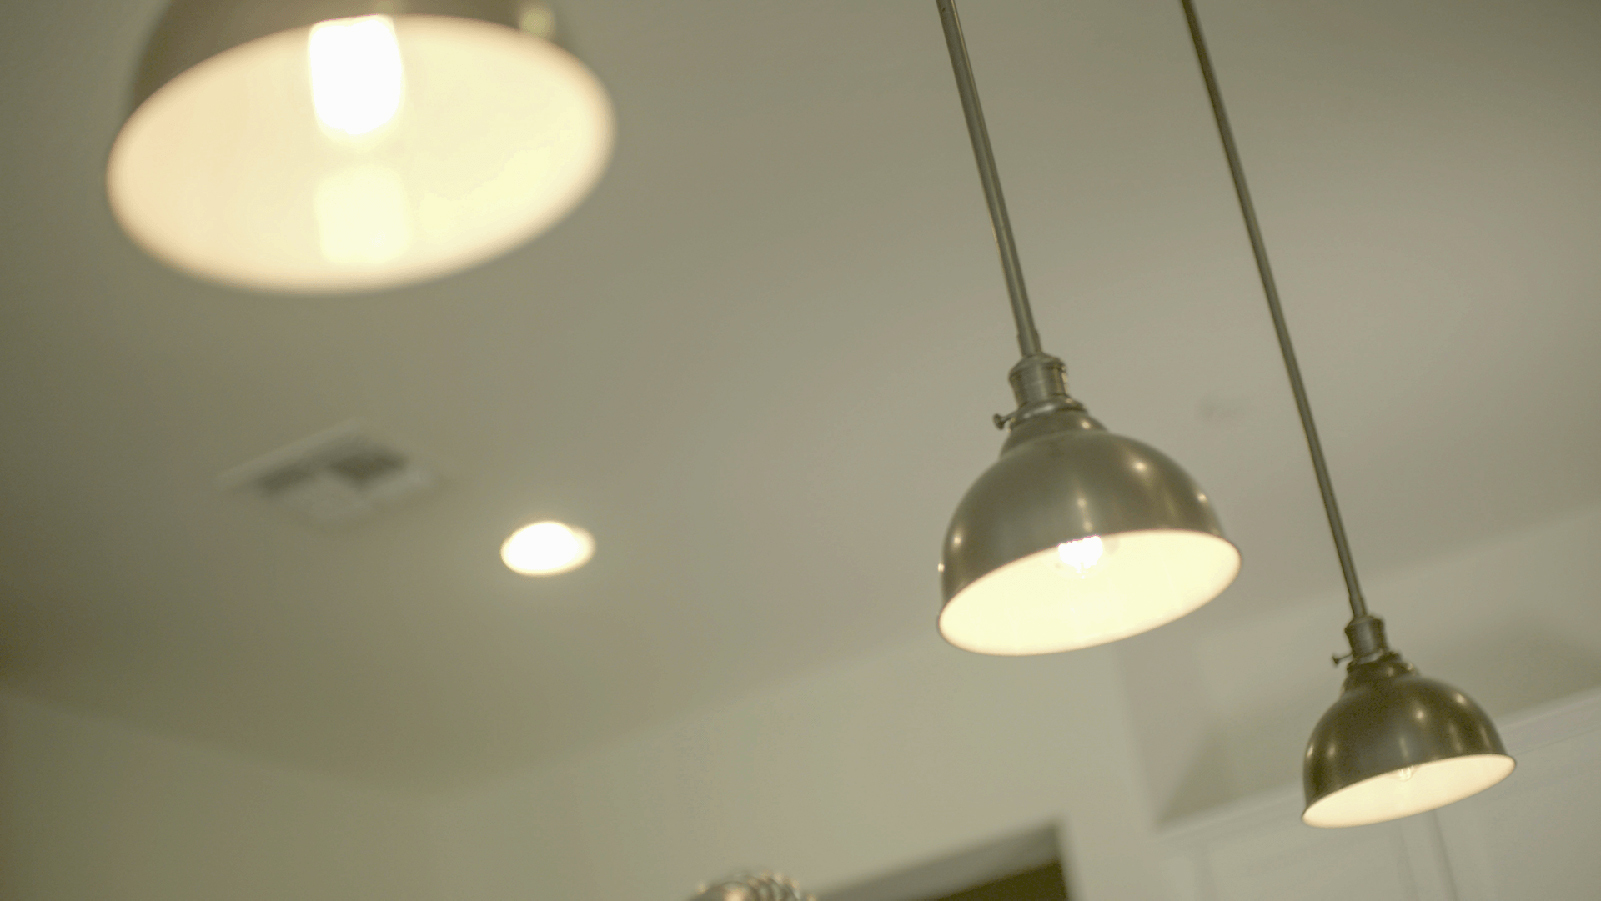 Light fixtures hanging from a ceiling.